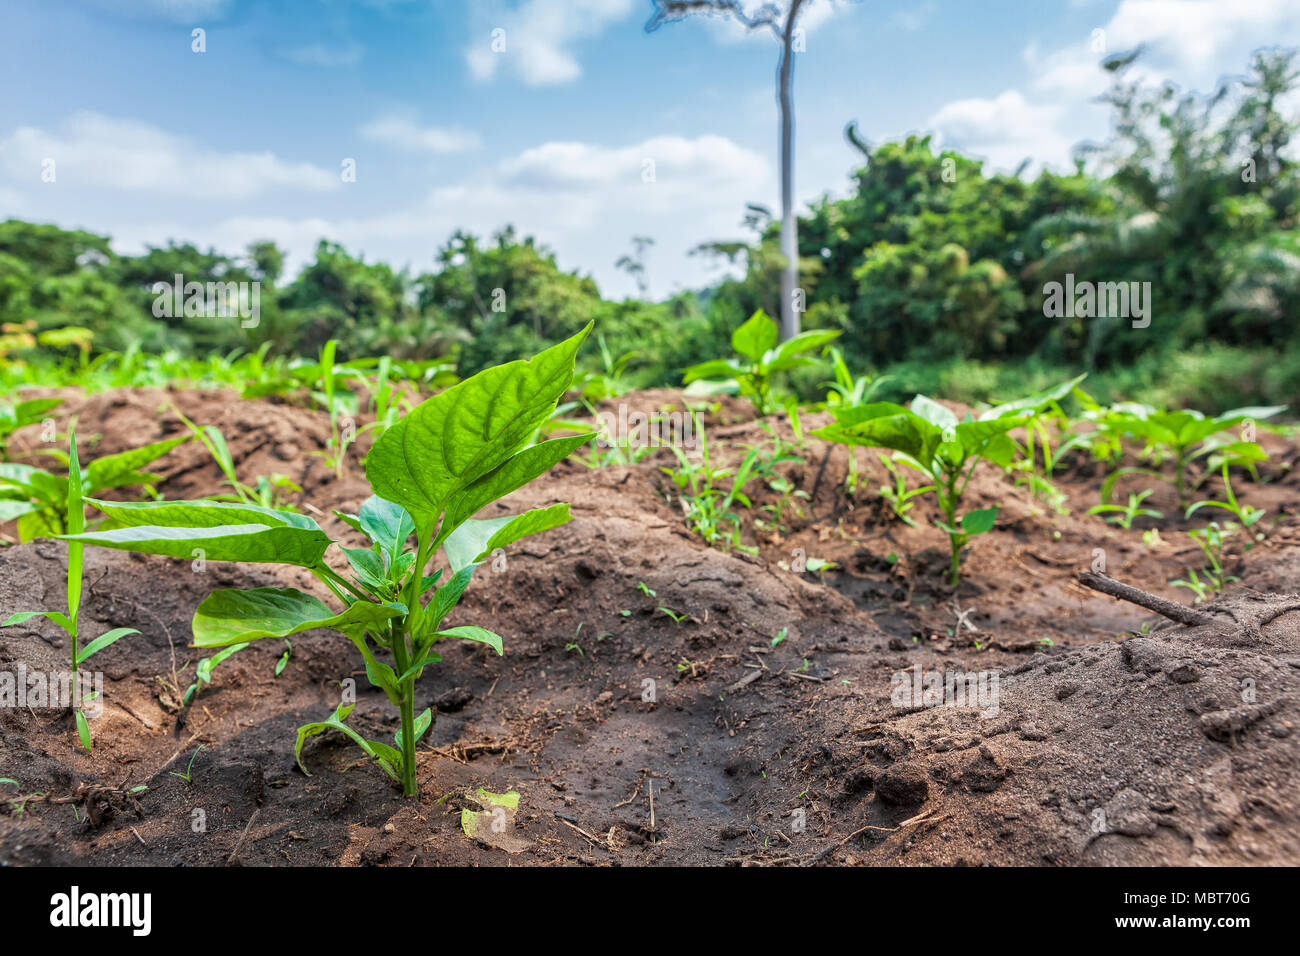 Rural plantation in the middle of the cabinda jungle, close view. Angola, Africa. - Stock Image